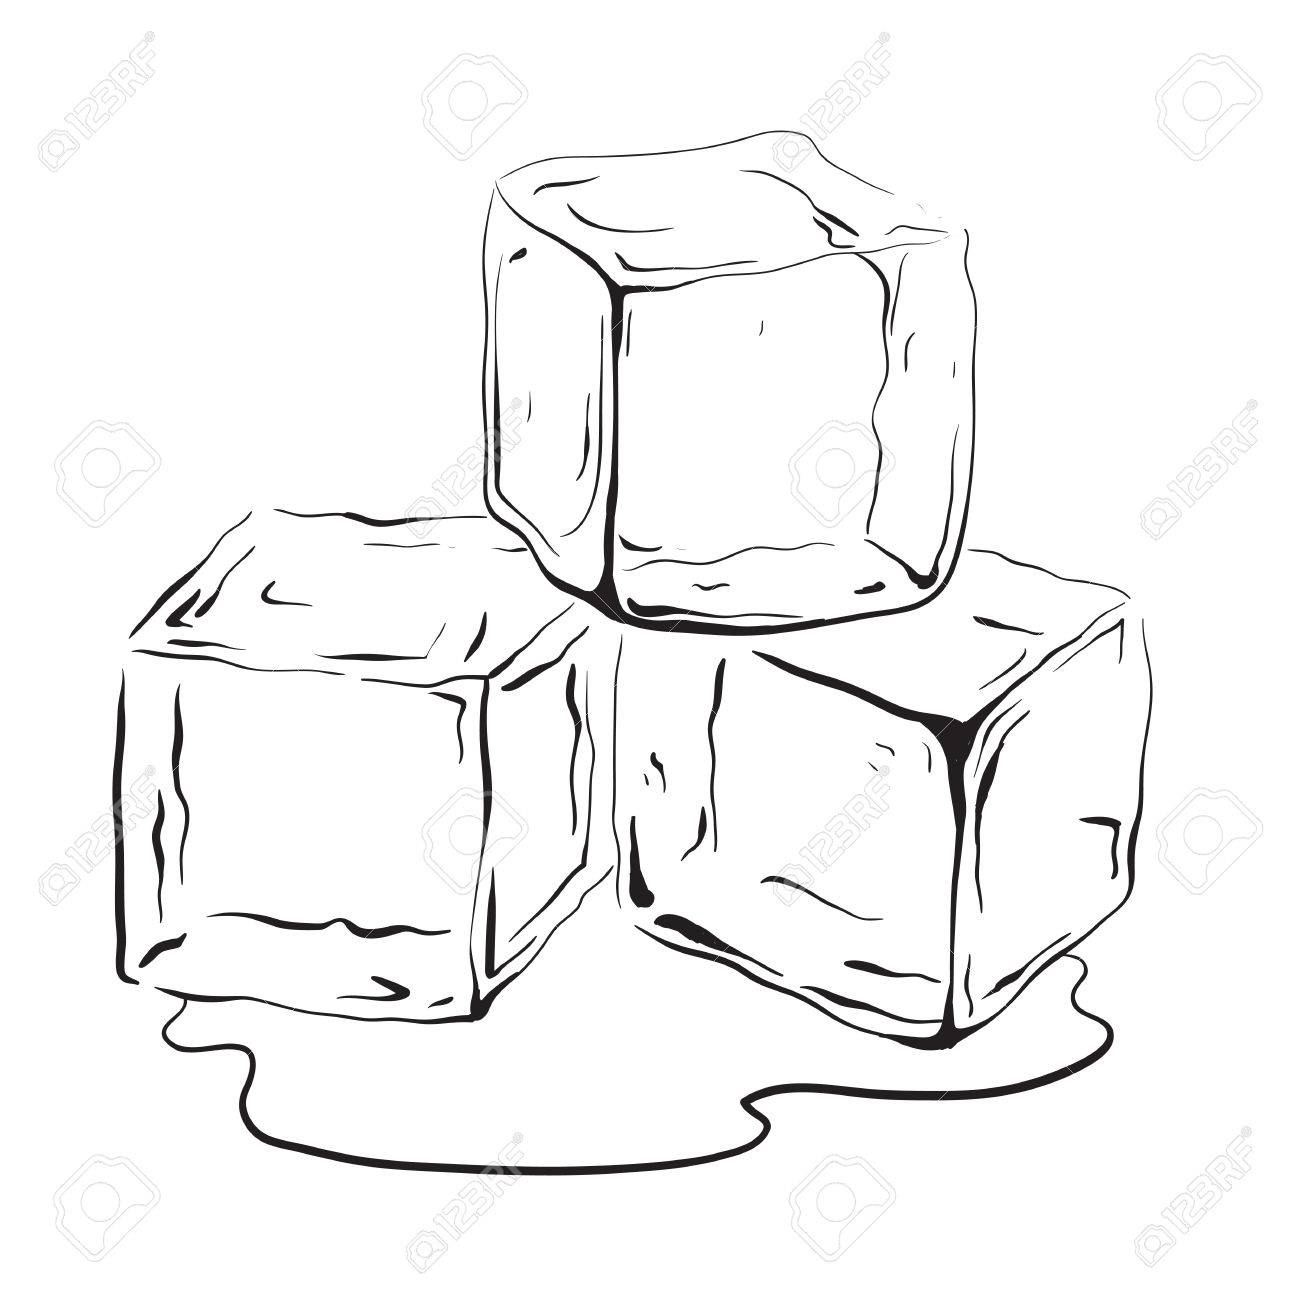 hand drawn ice cubes black and white vector illustration for royalty free cliparts vectors and stock illustration image 83596462 hand drawn ice cubes black and white vector illustration for